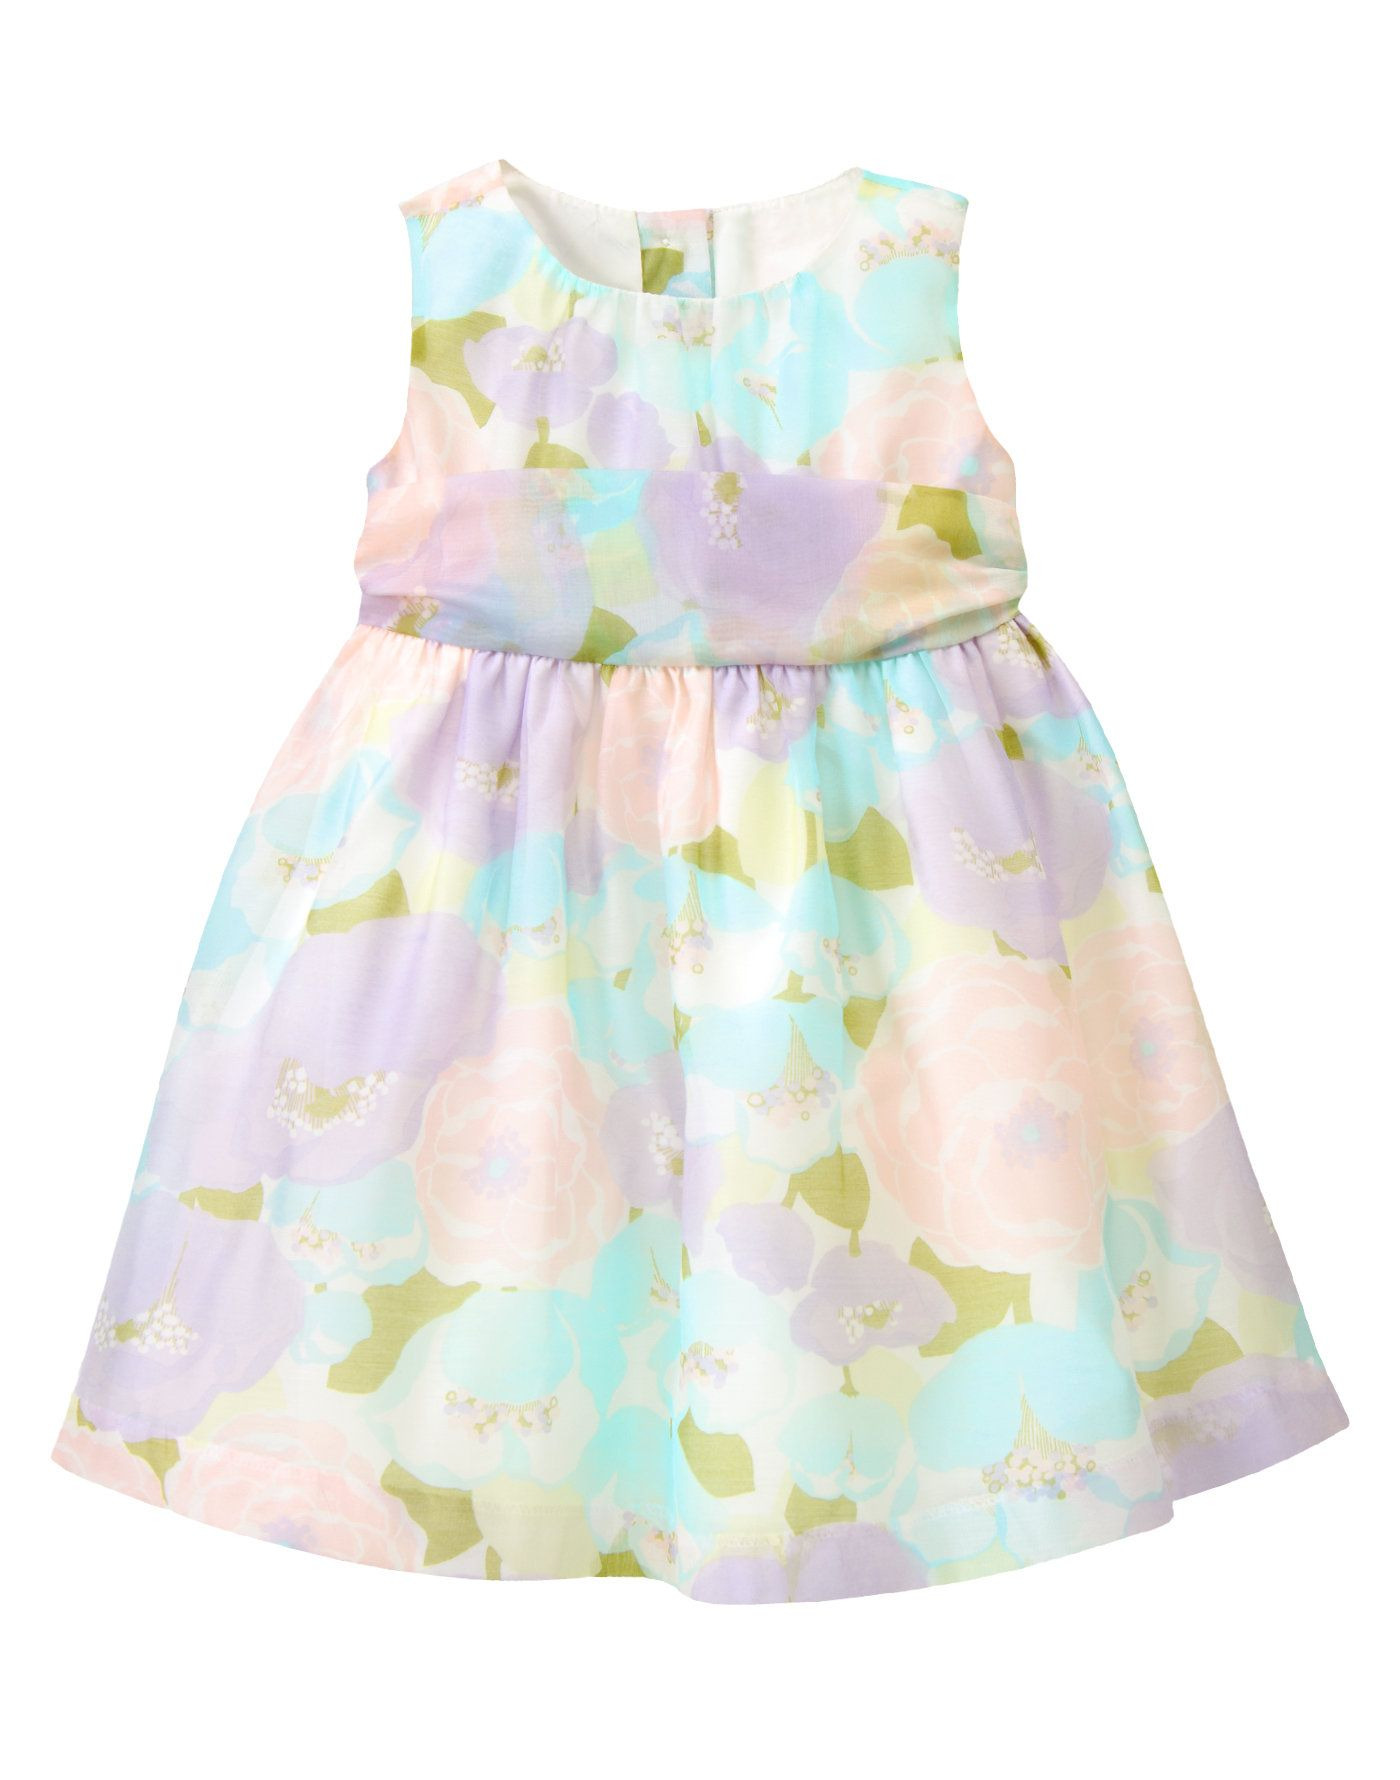 ca599a37fa56 Floral Organza Dress at Gymboree | coordinating g/b outfits for the ...